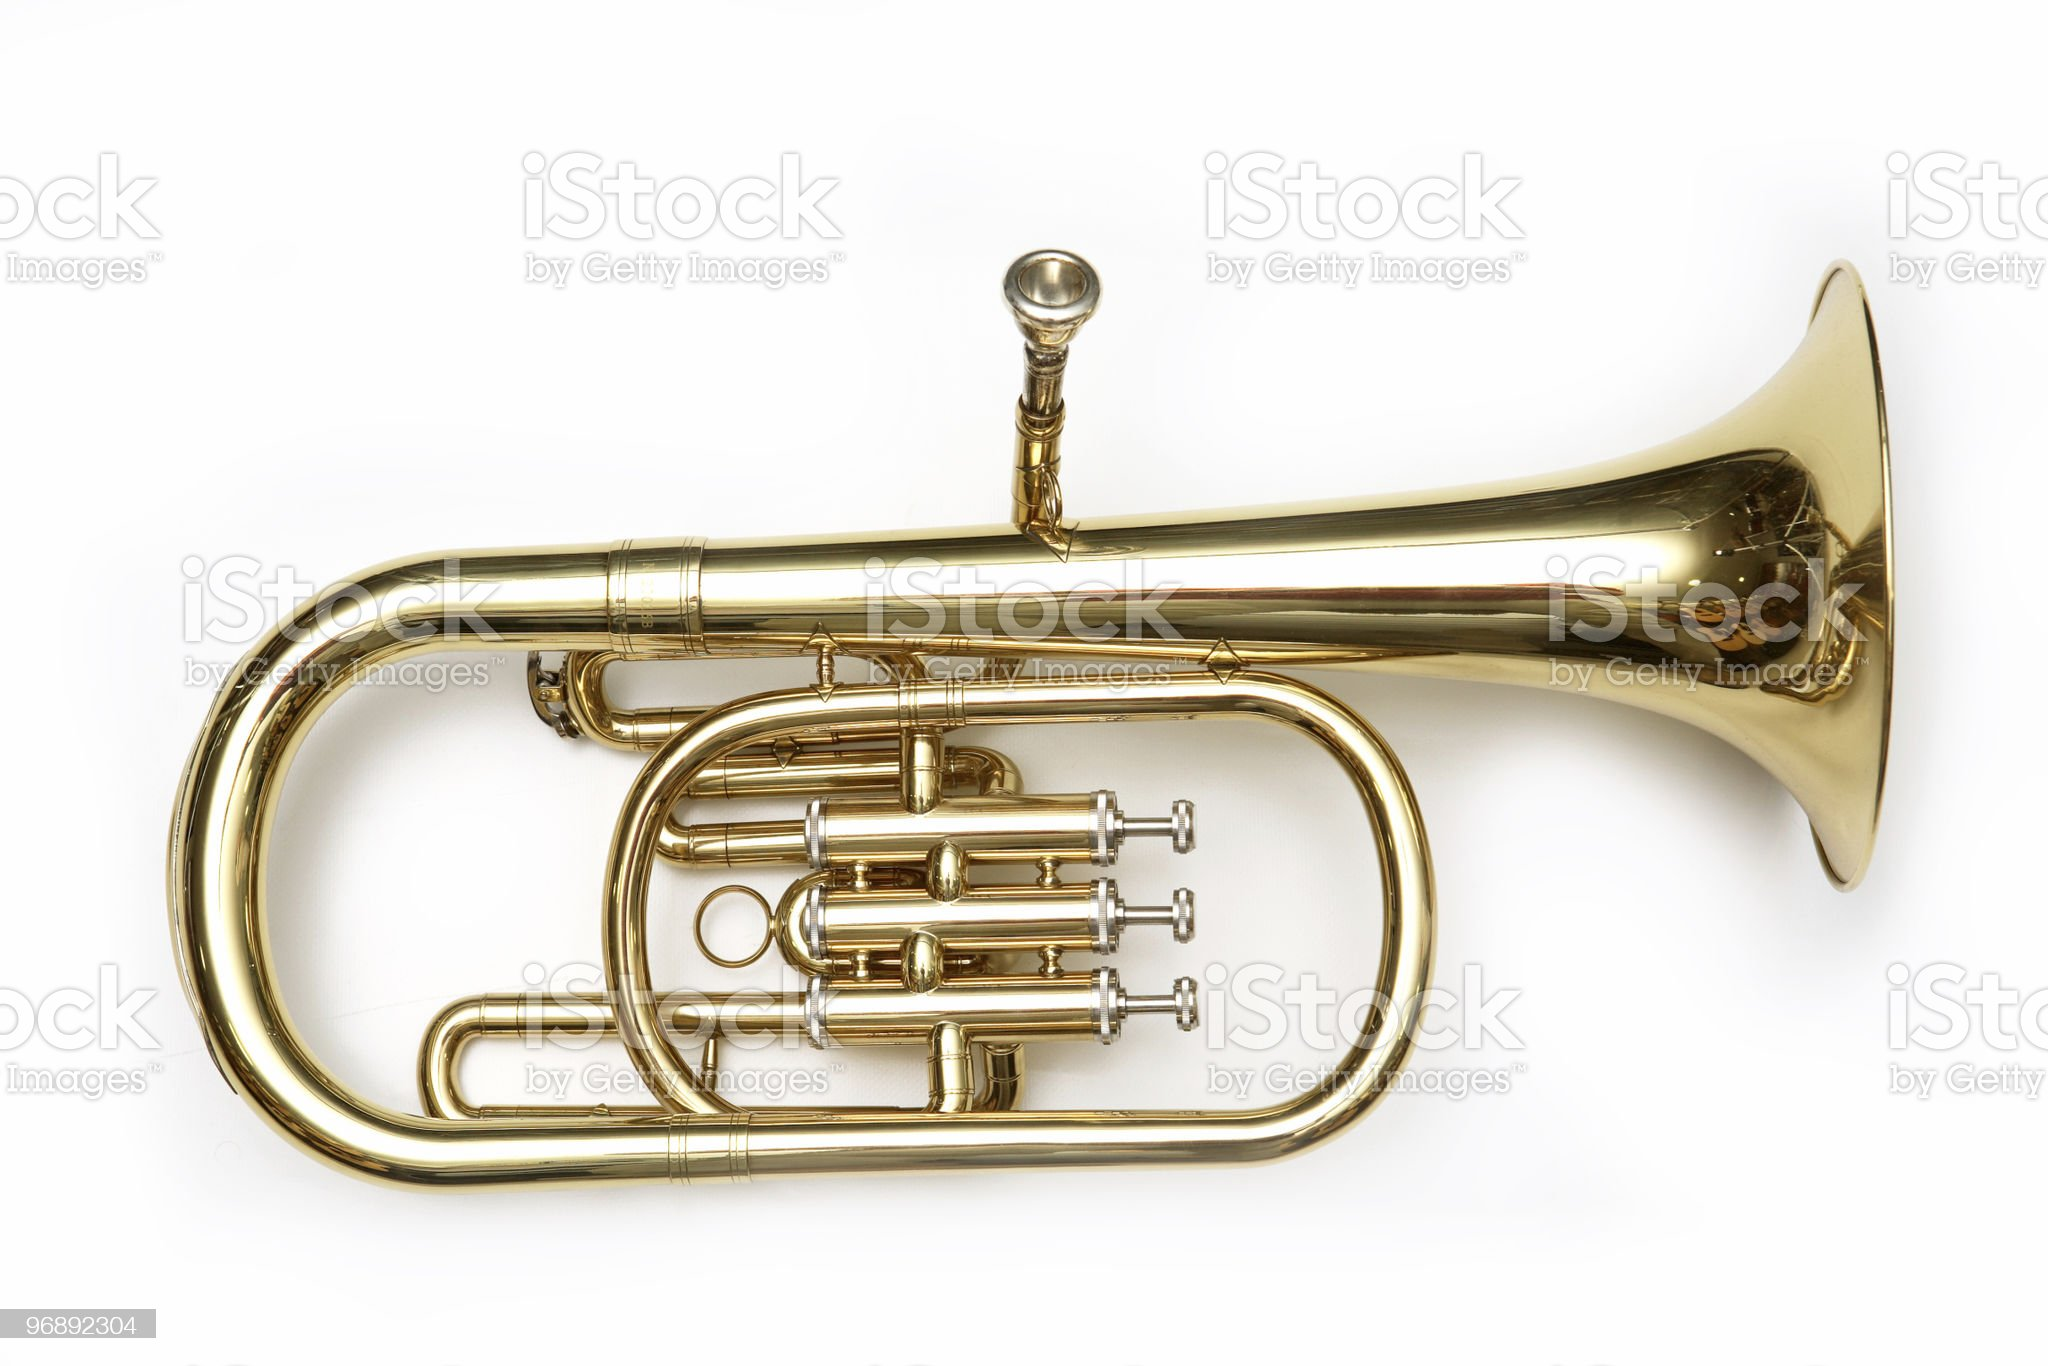 Isolated image of a gold-toned cornet royalty-free stock photo